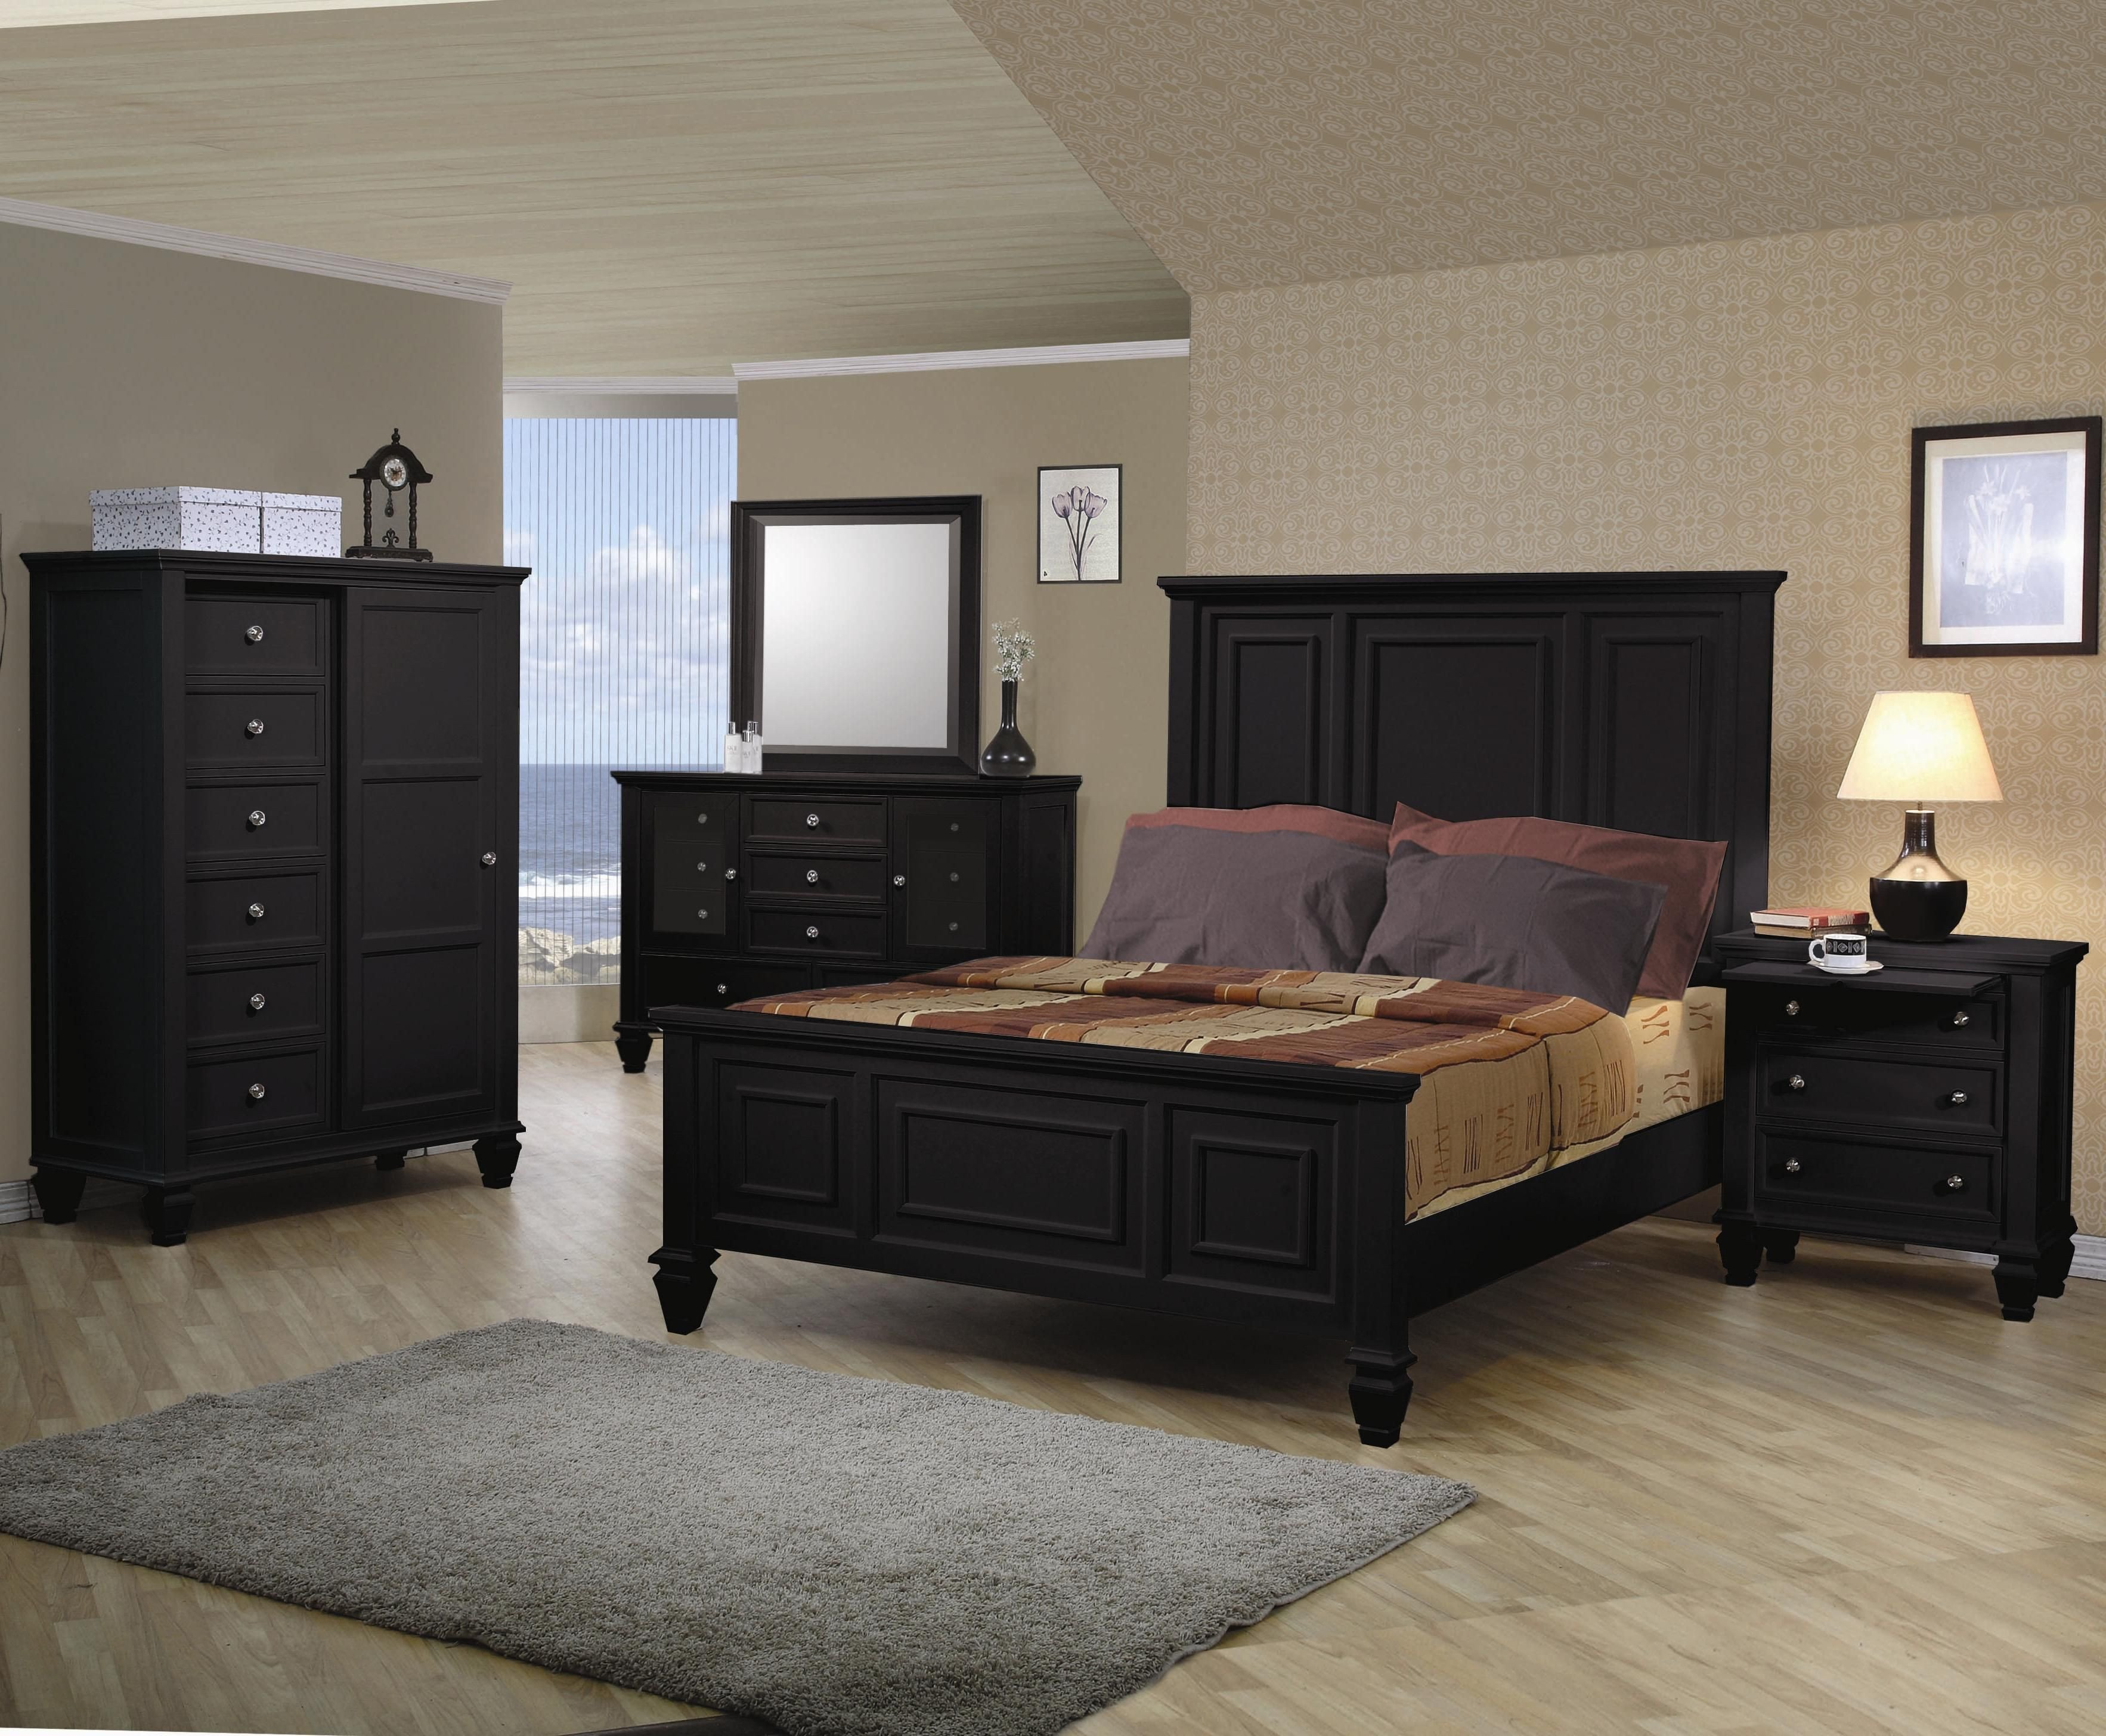 The Dump Bedroom Set Luxury Pin On for the Bedroom